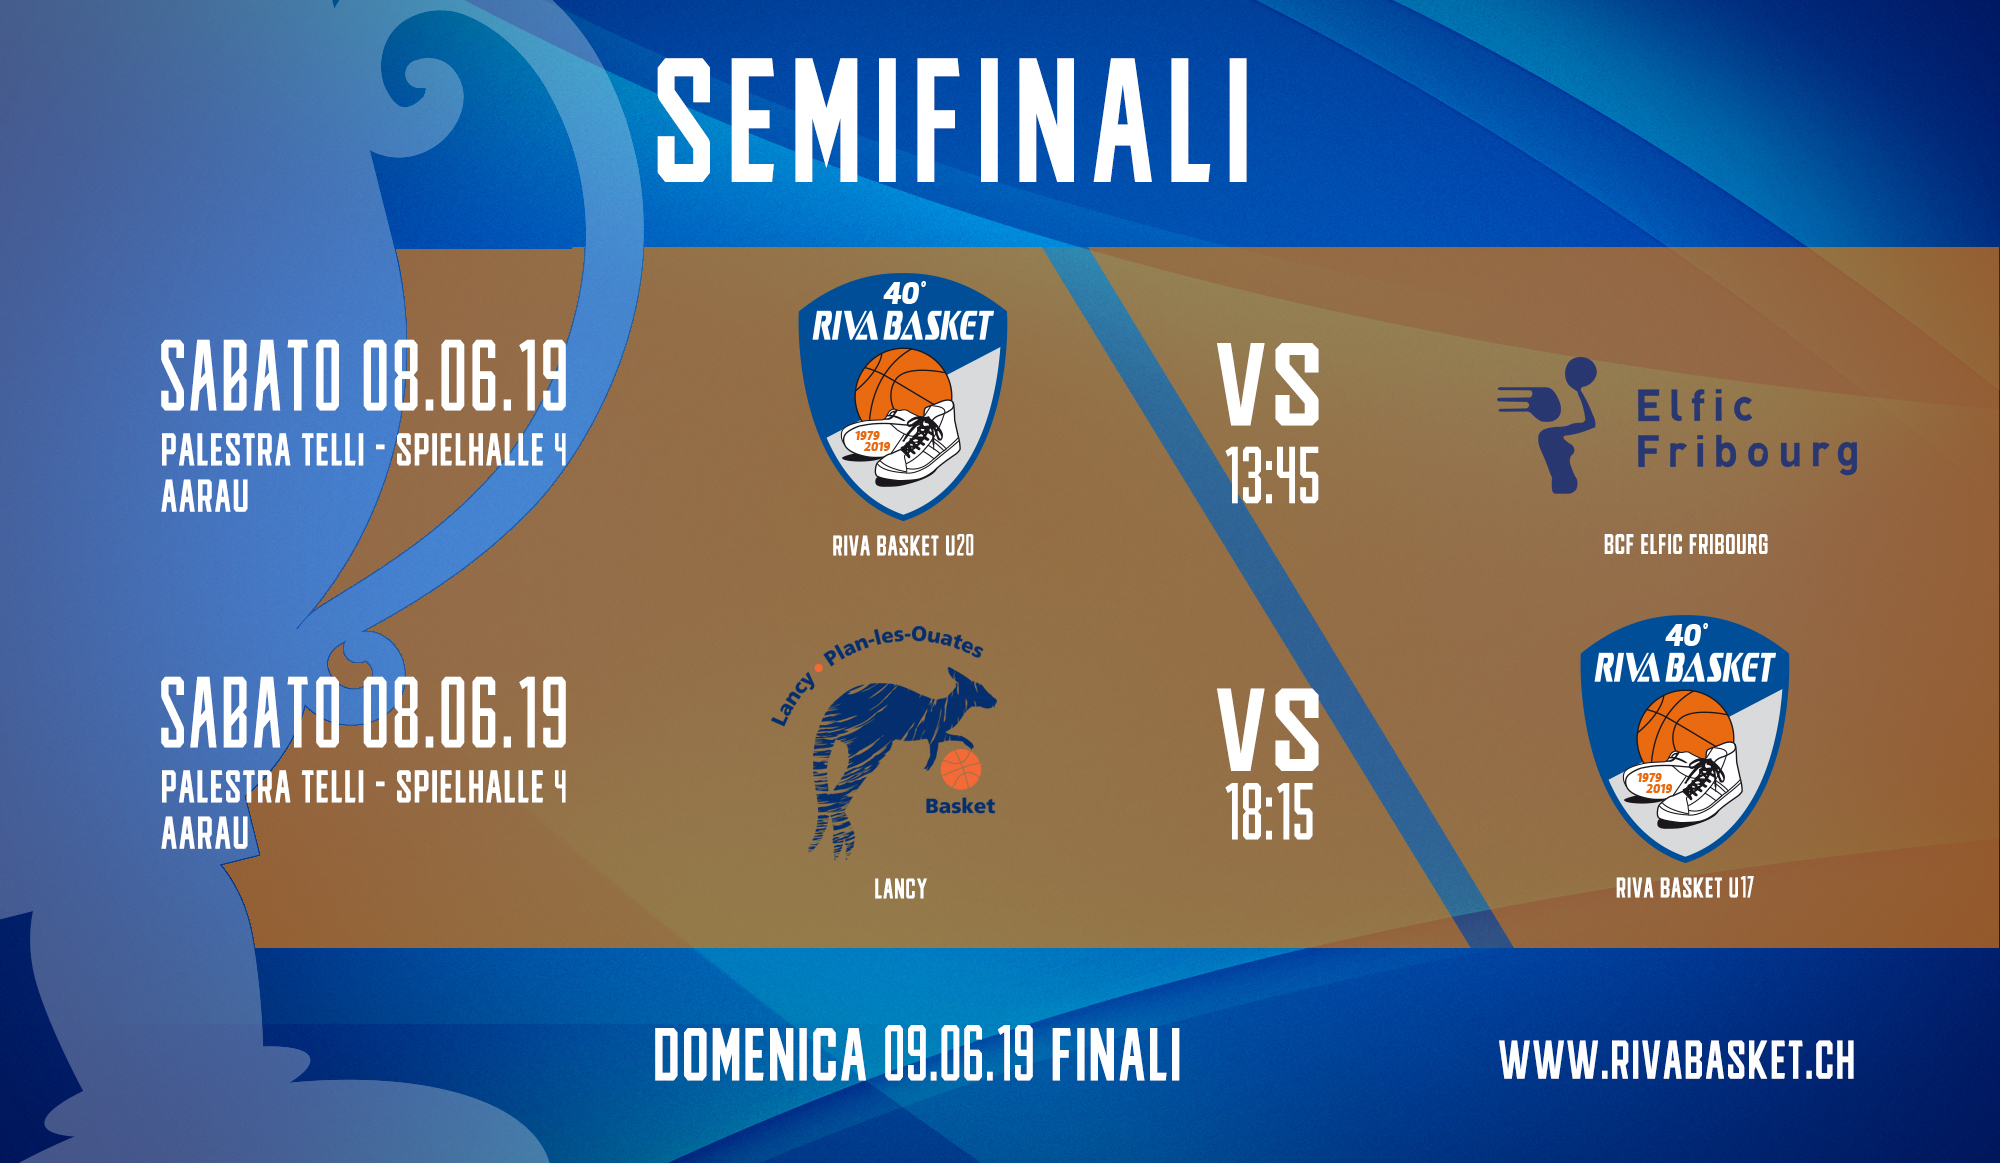 http://www.rivabasket.ch/wp-content/uploads/2019/06/Partite_giovanili_semifinali.jpg